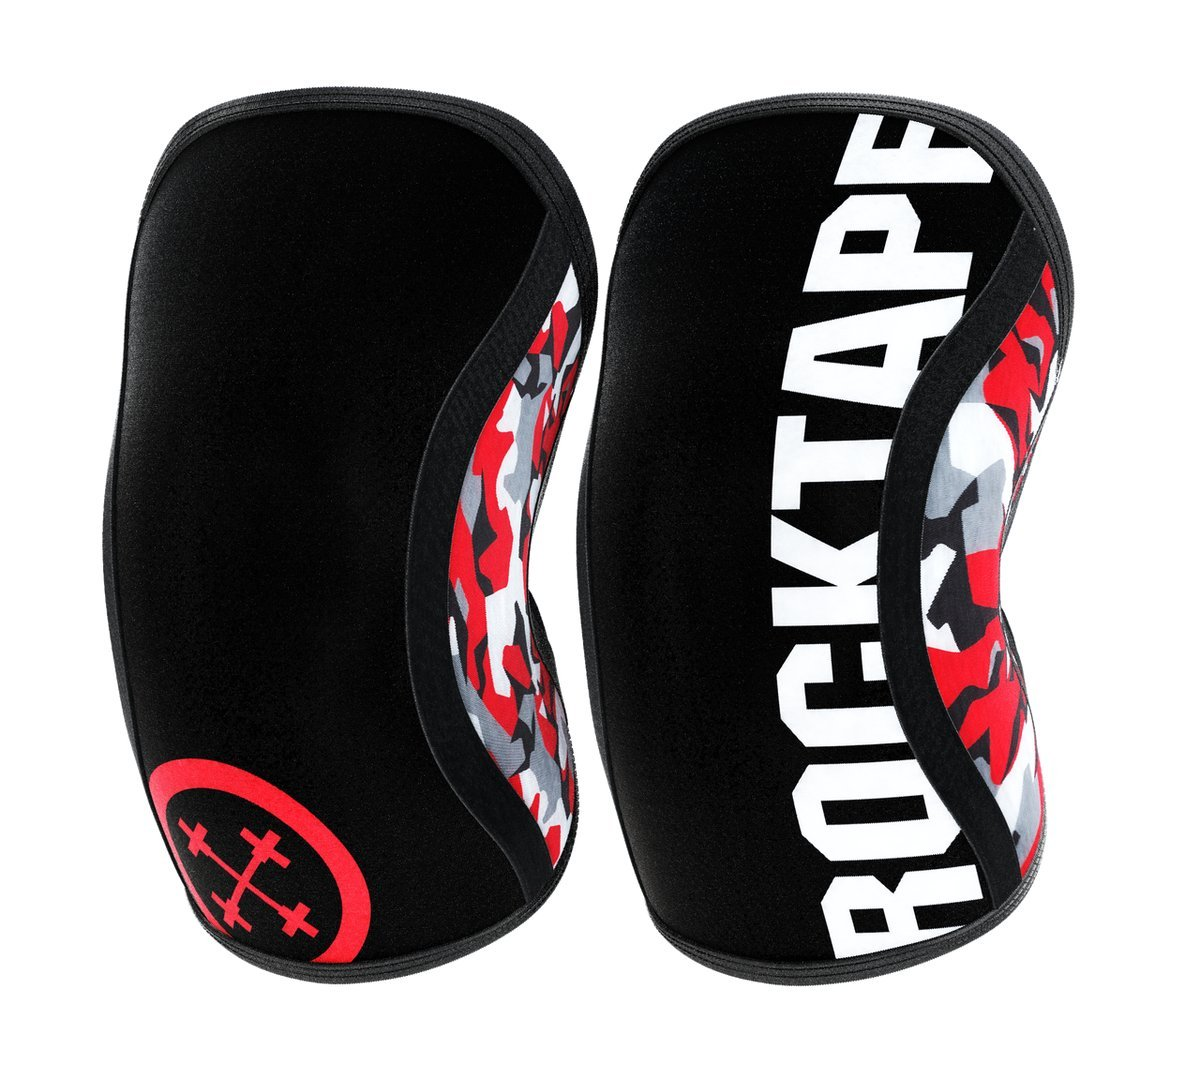 RockTape Assassins 5mm Knee Sleeves (2 Sleeves), Large (Fits 14.5-15.5 Inches), Red Camo by RockTape